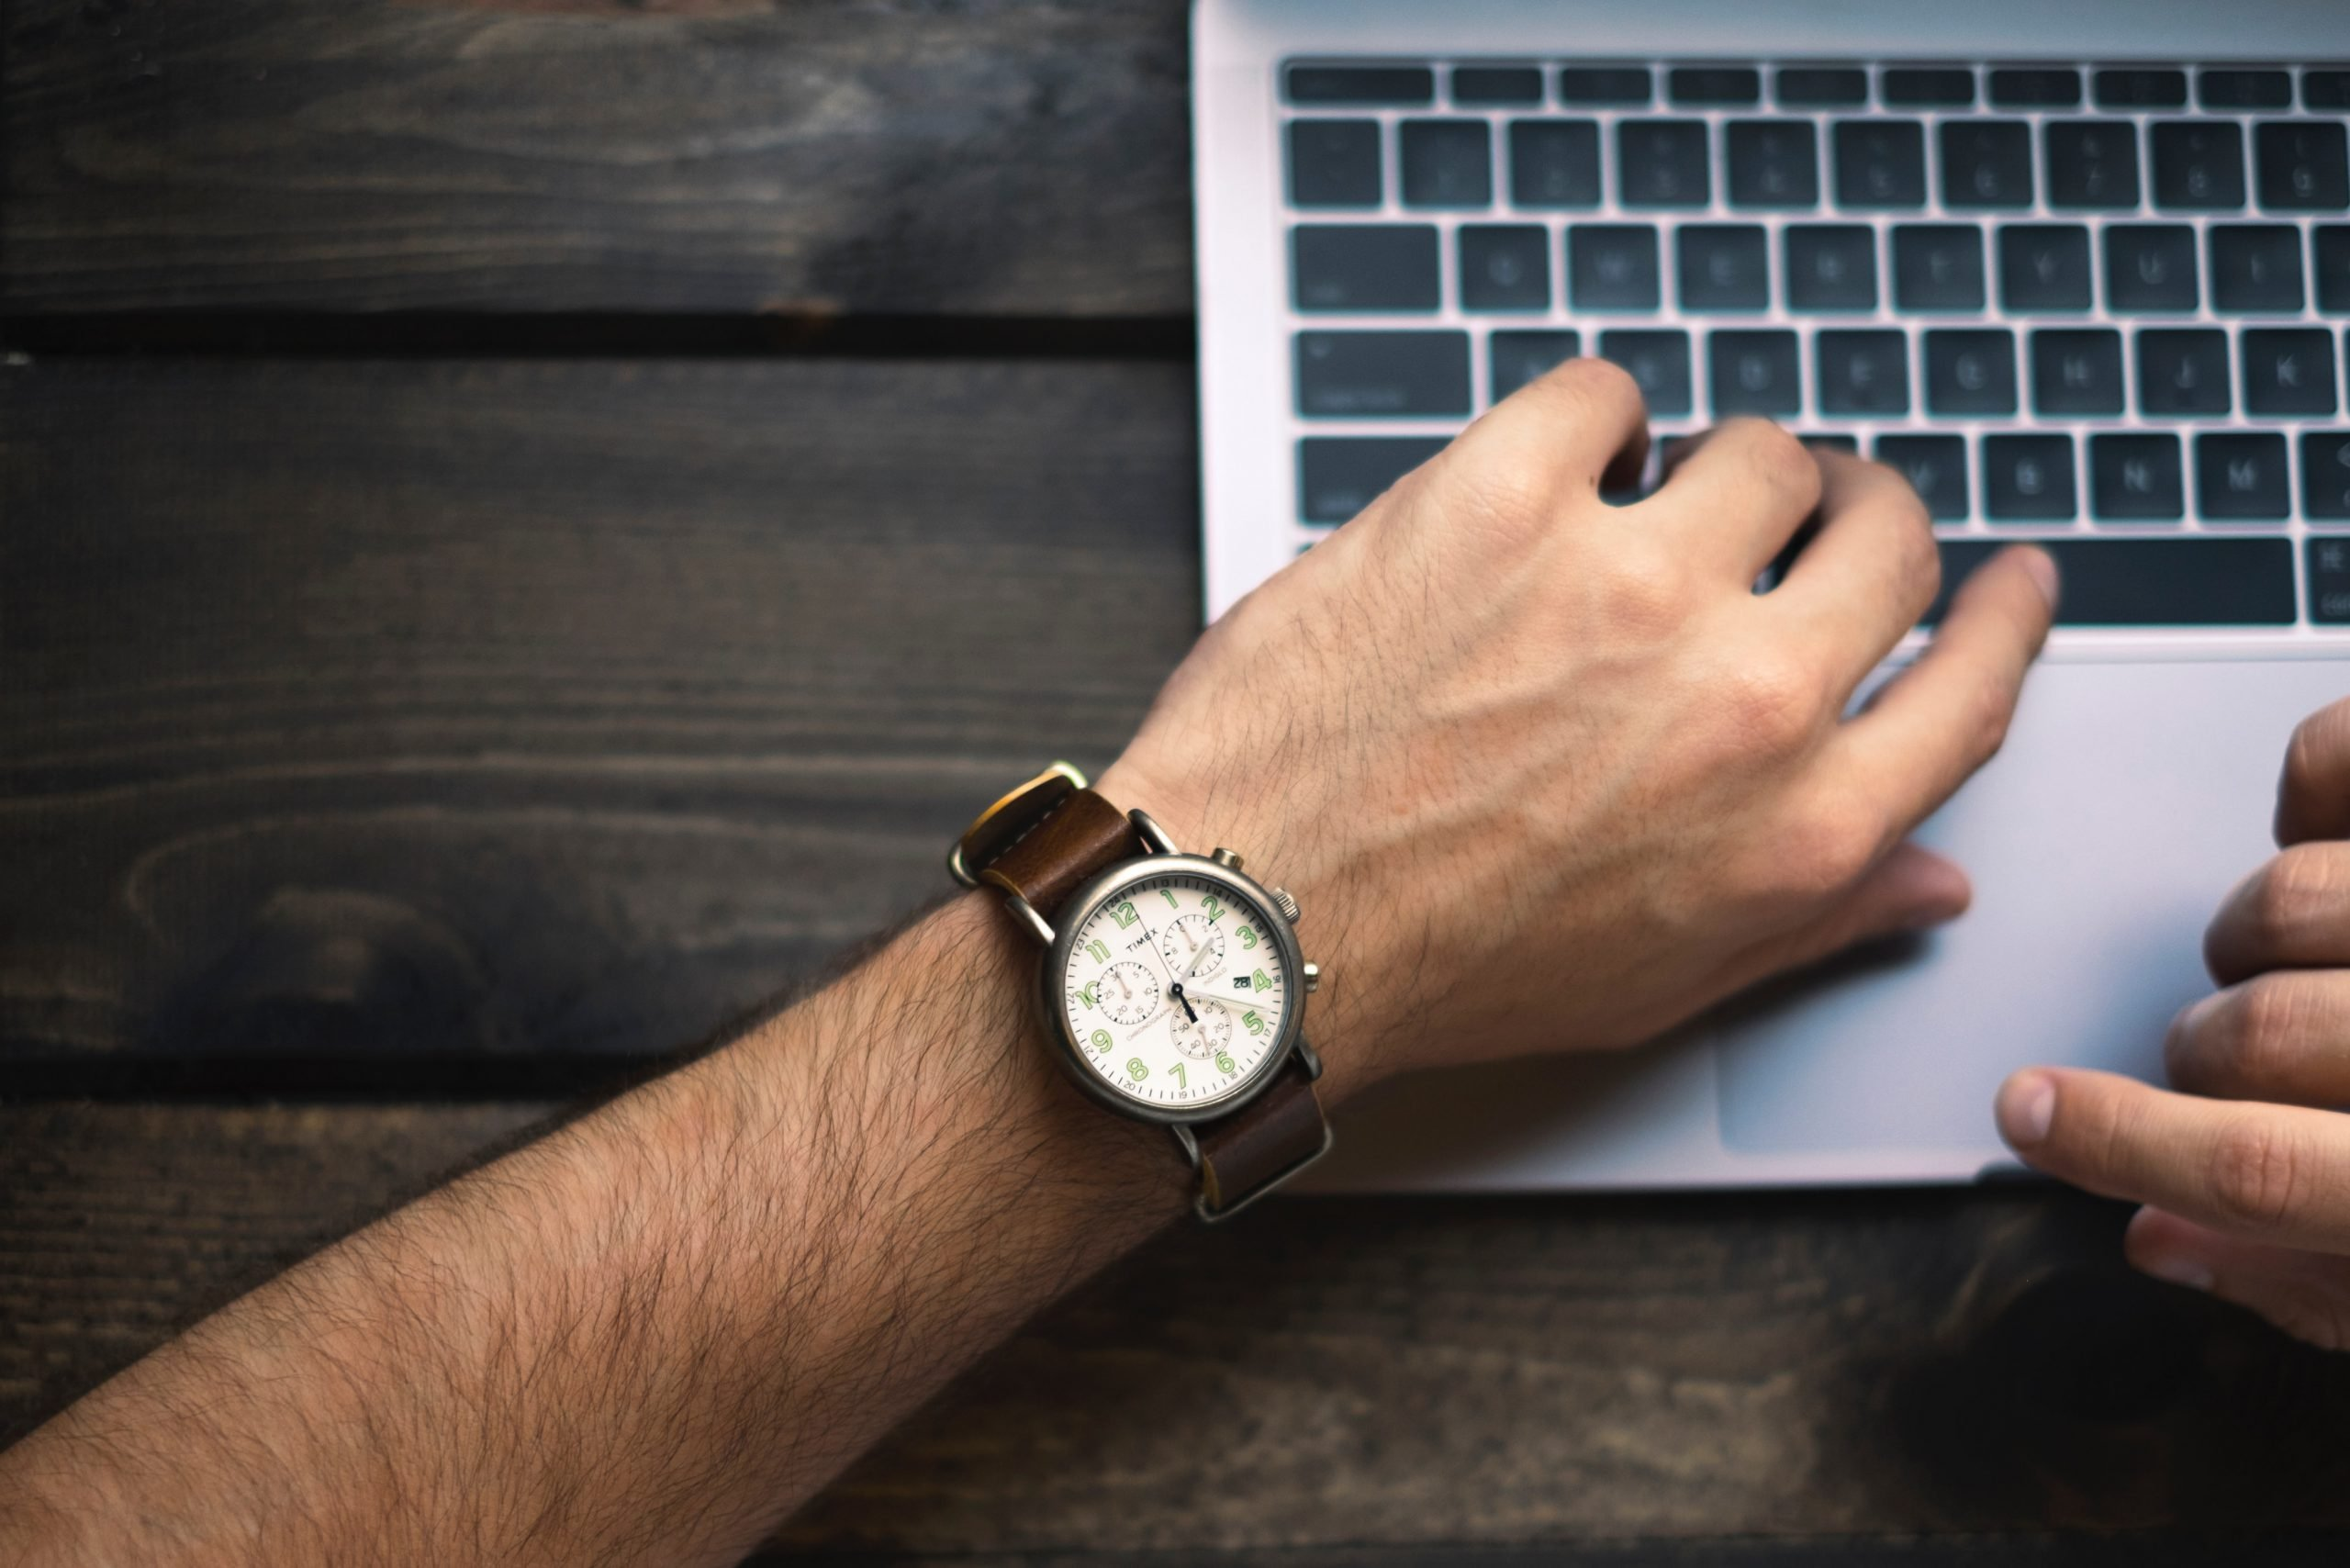 4 Tips to Maximize Productivity as a Freelance Writer